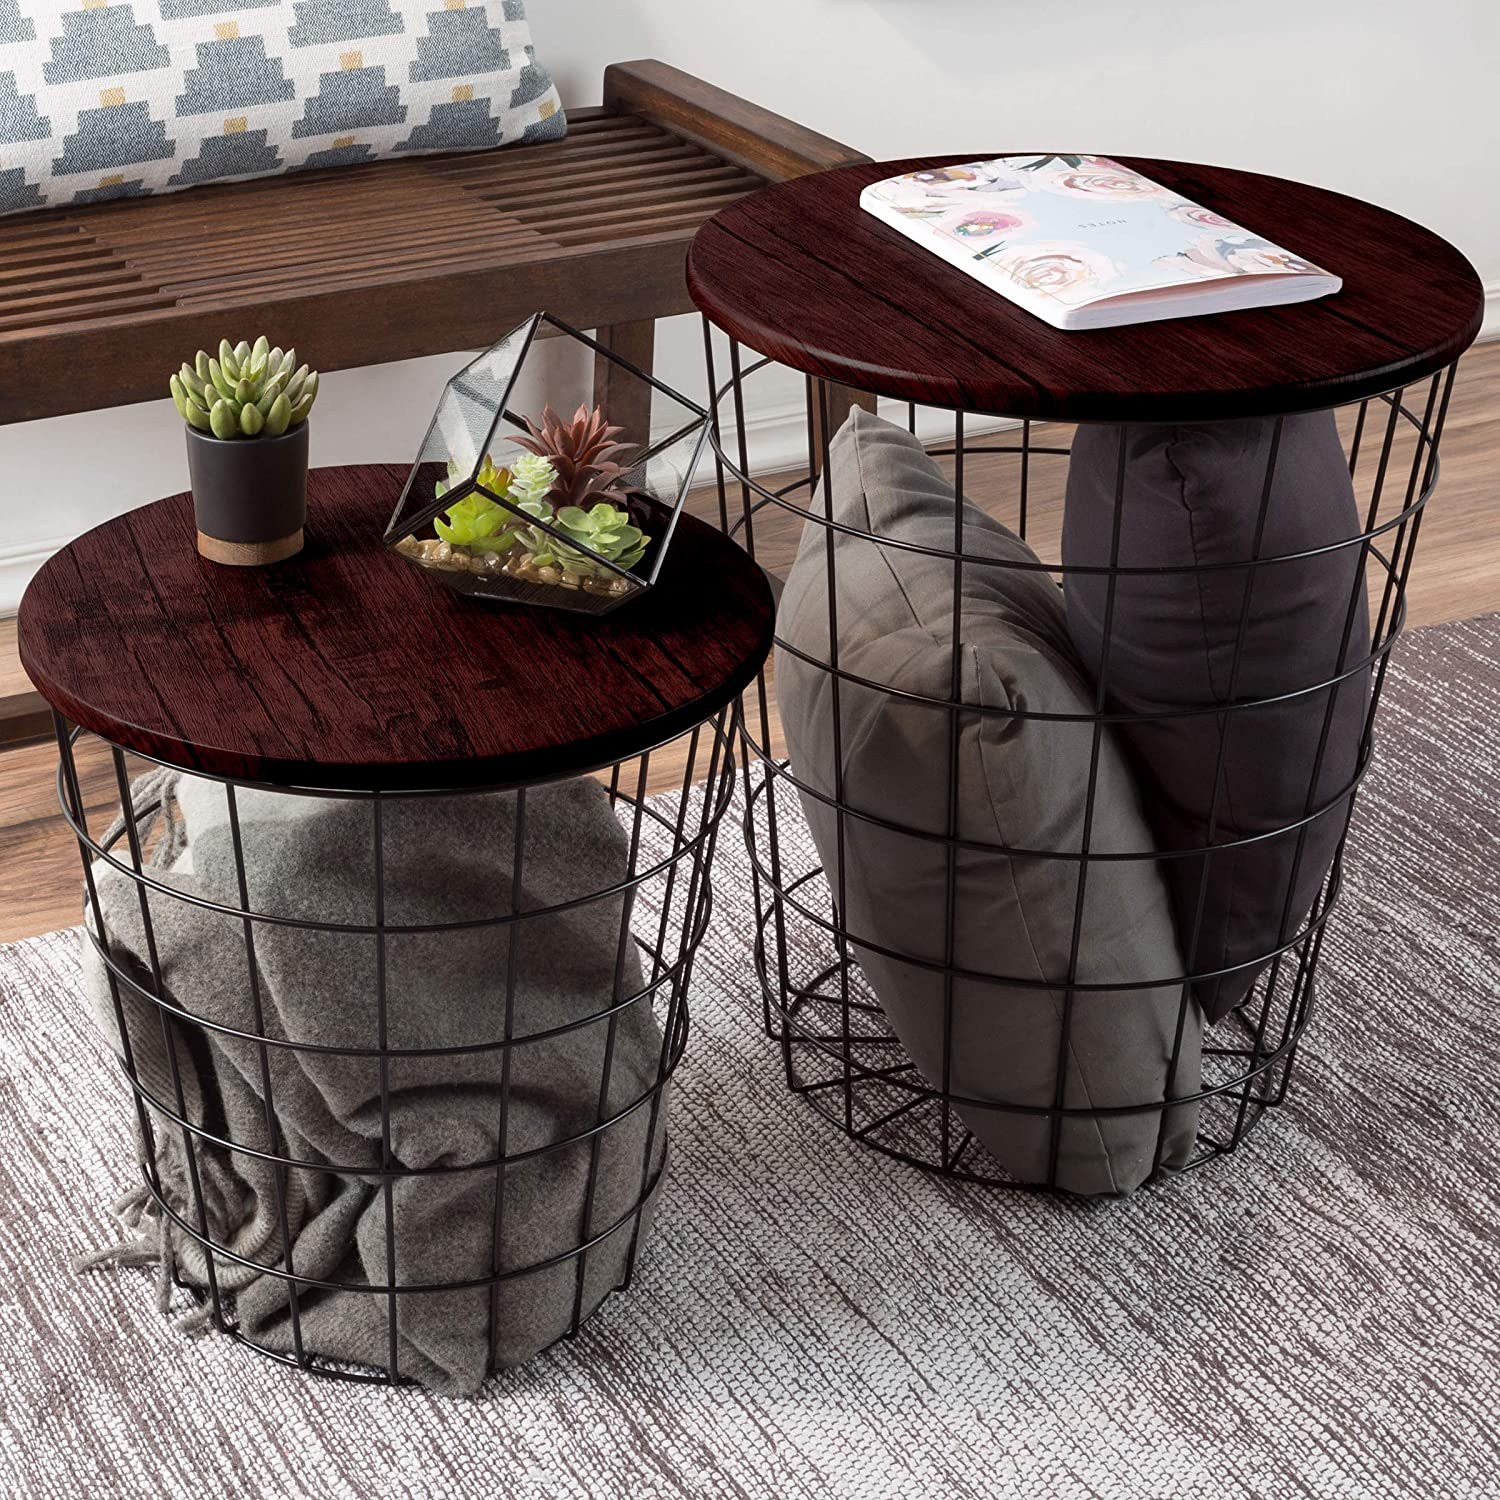 Picture of: 15 Stunning Wire Basket Storage Ideas 2020 Storables